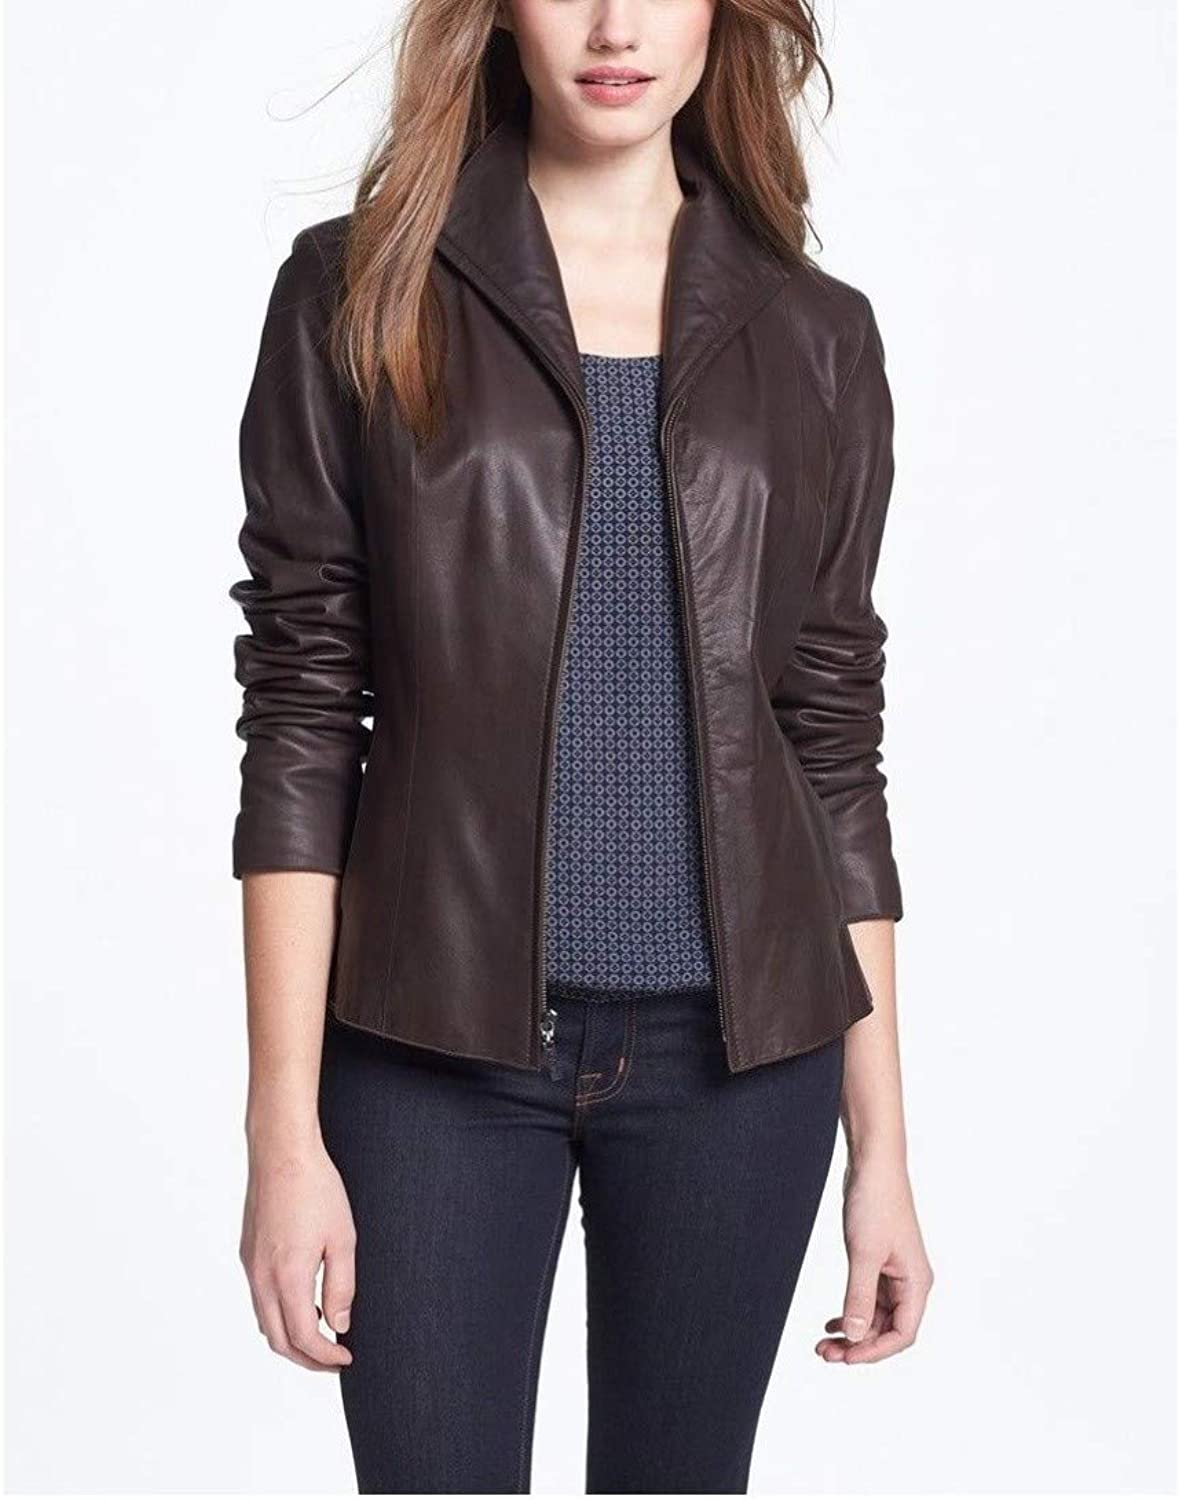 Dillo Leather Motorcycle Bomber Biker Choclate Brown Brown Real Leather for Jacket